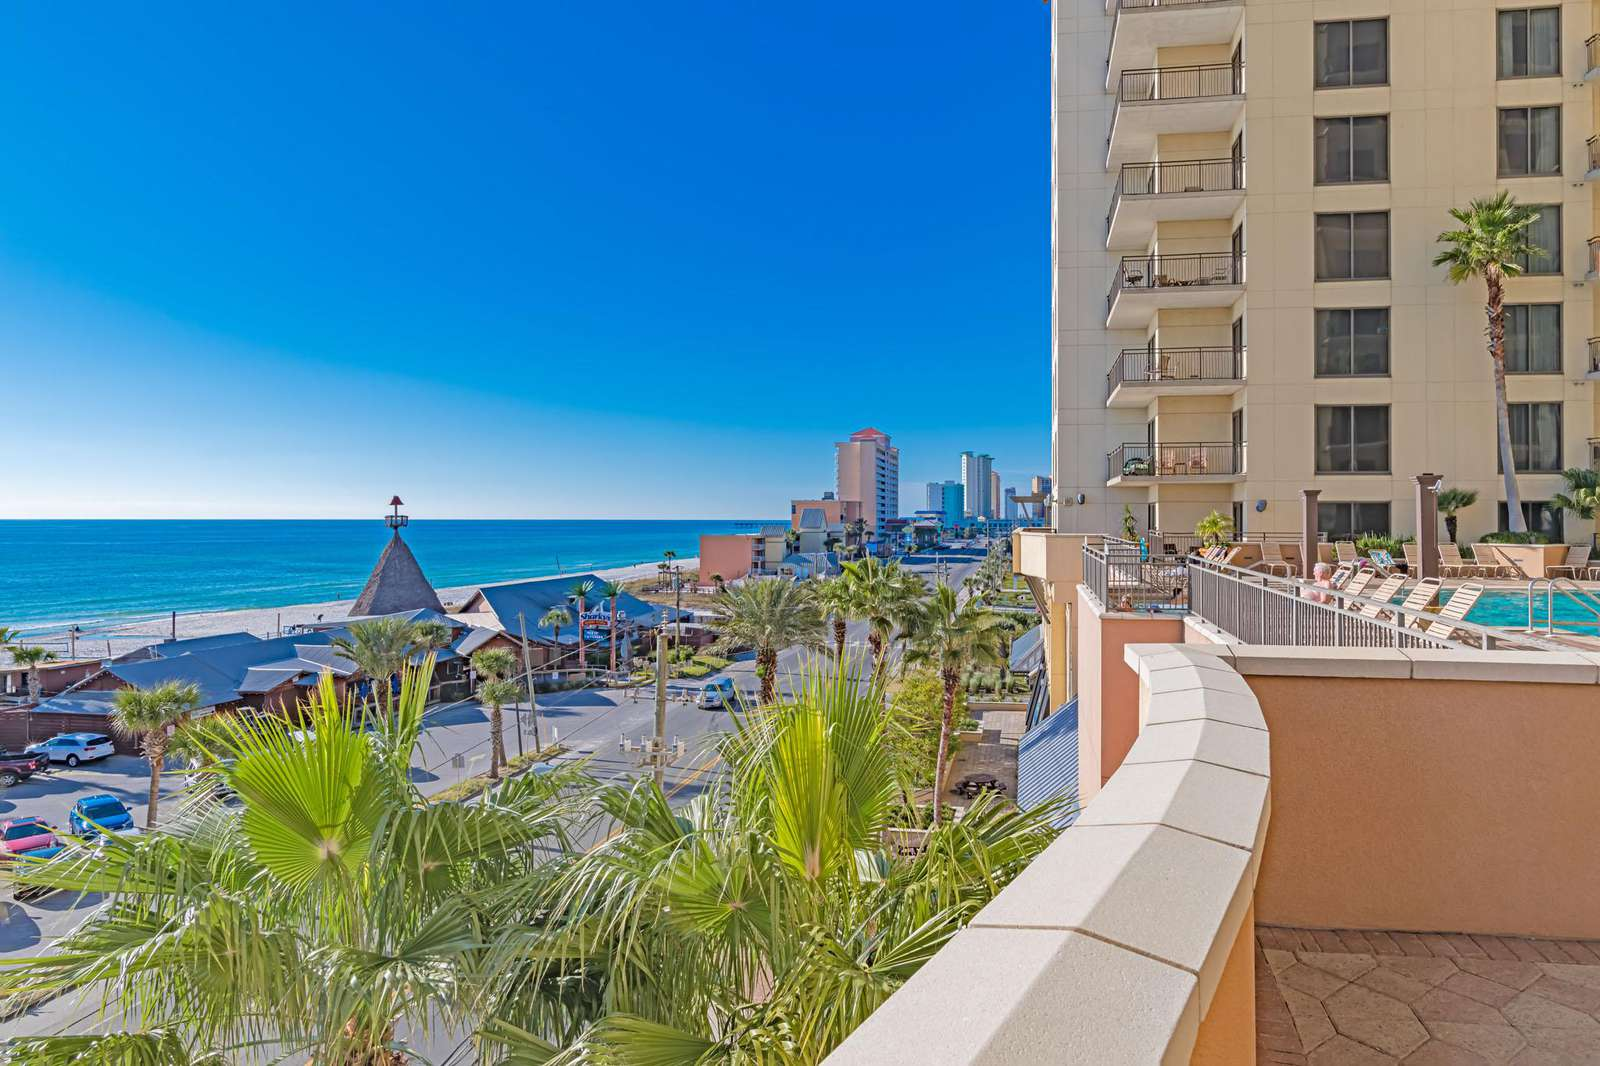 Incredible views from the pool deck!